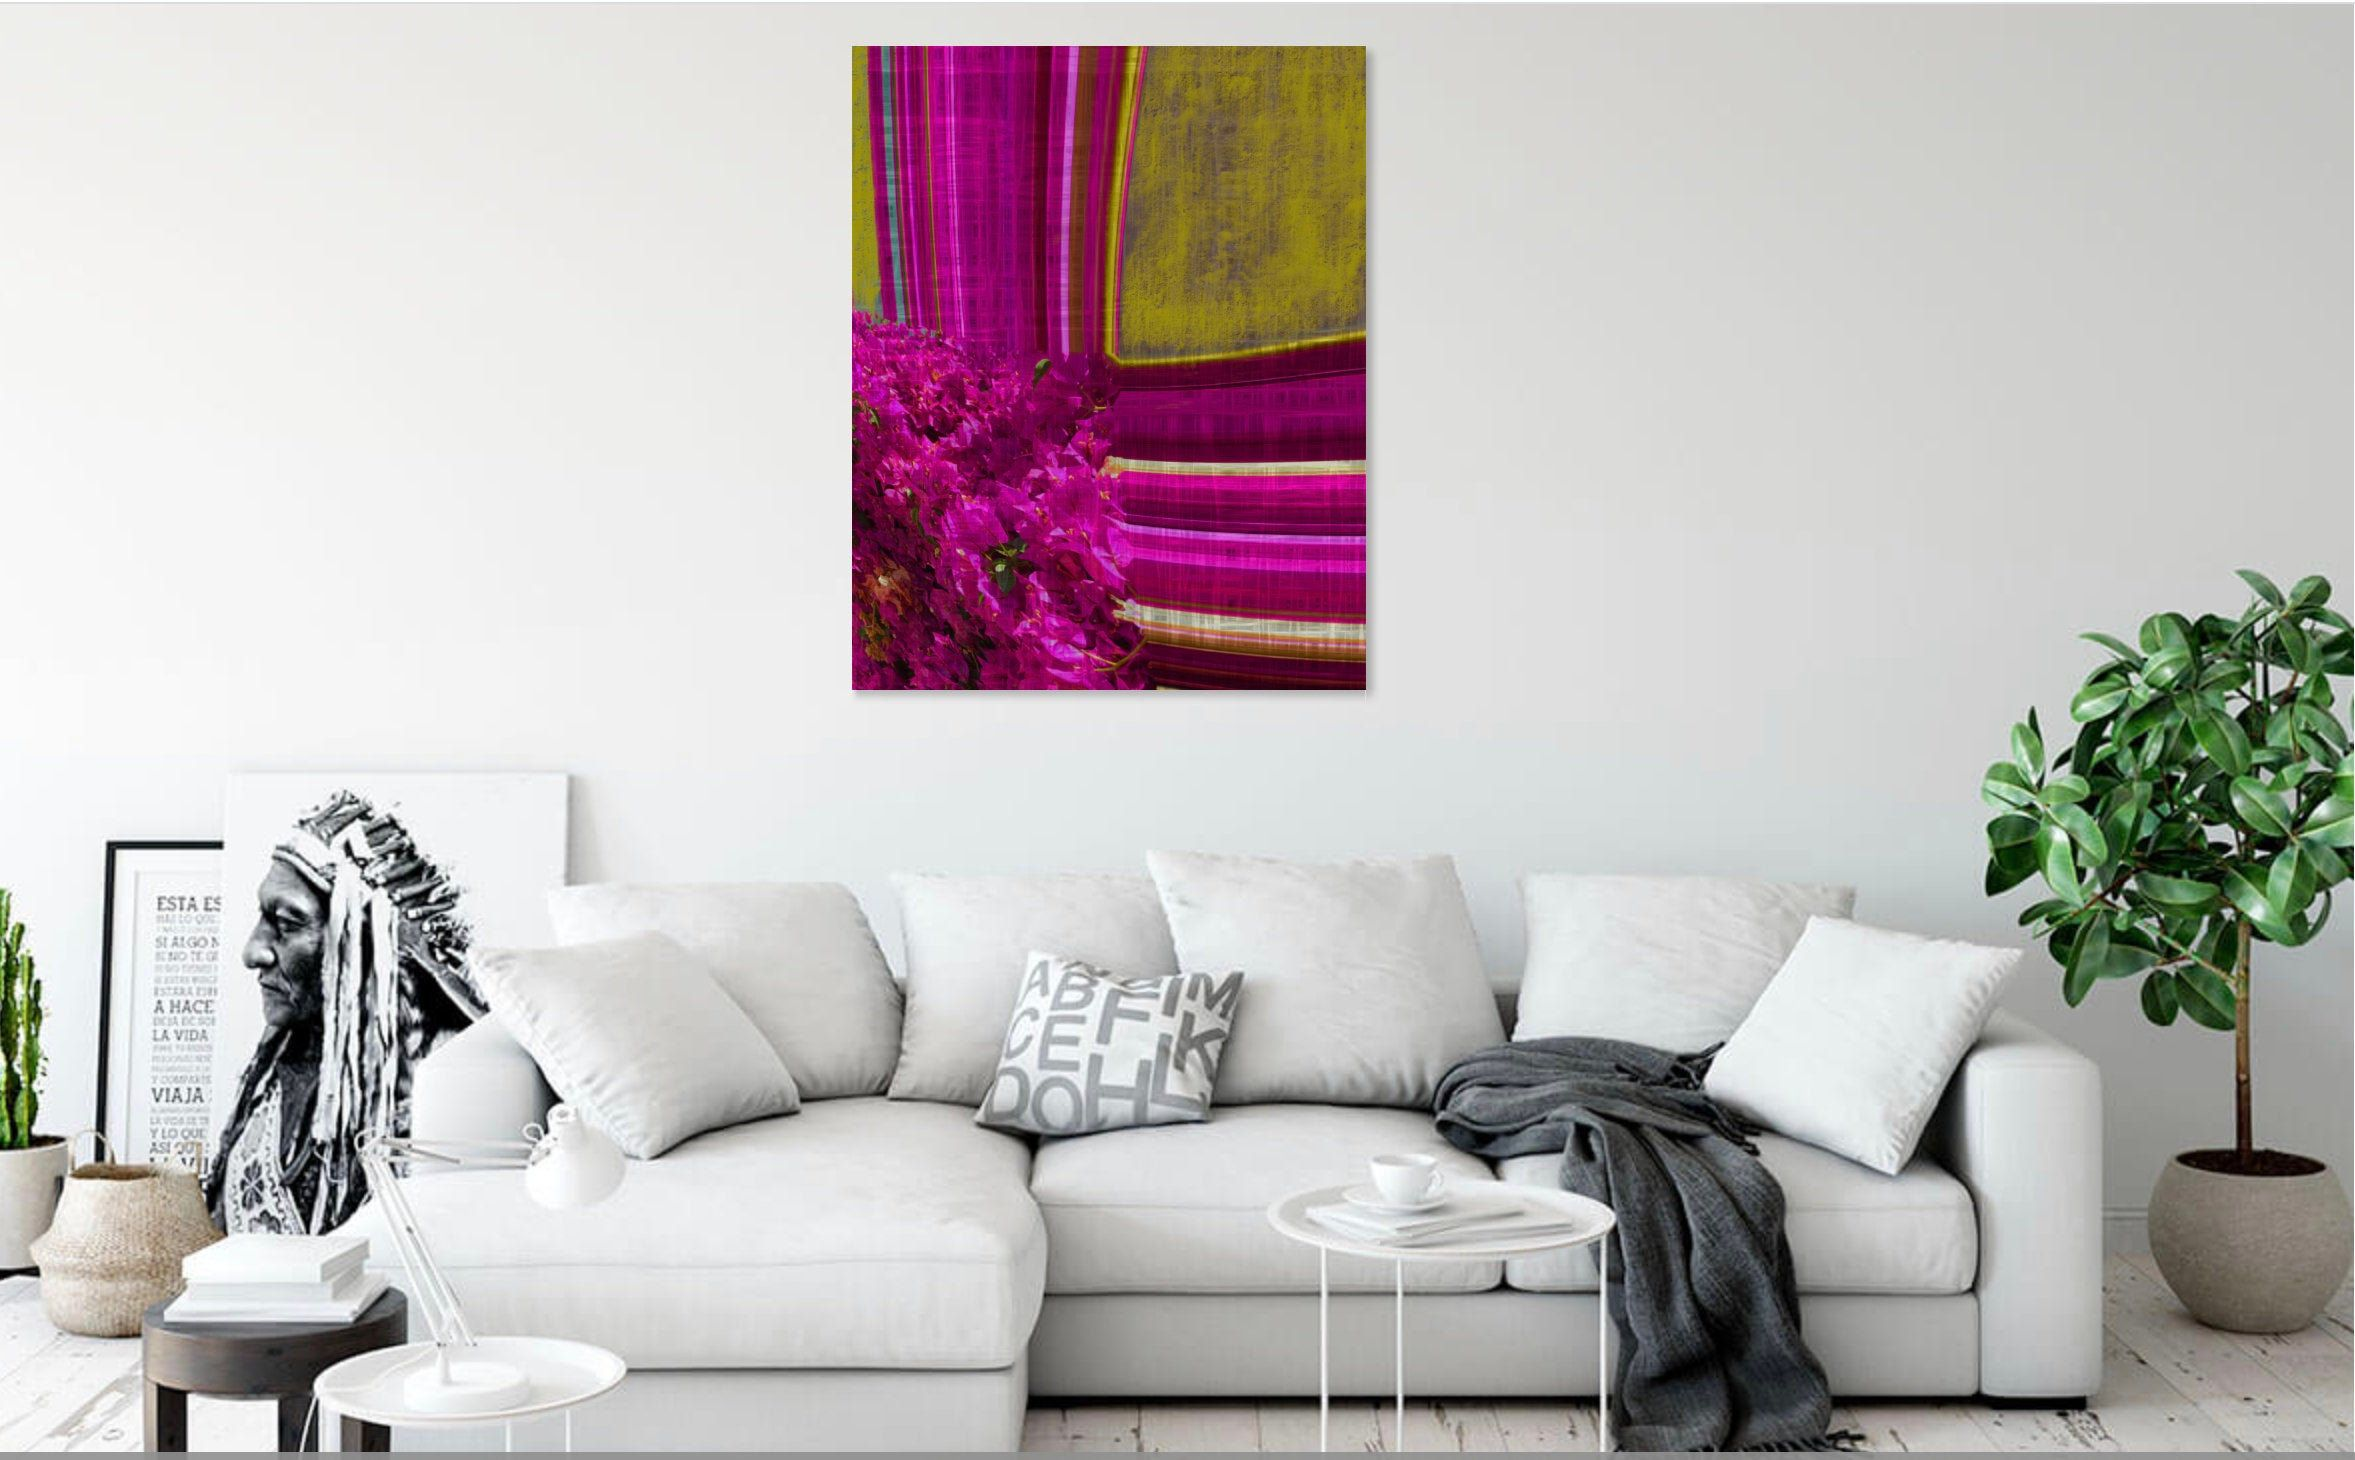 Abstract Wall Art Painting Printed On Canvas Fine Art Wall Hanging Decor Original Geometric Art In 2021 Abstract Wall Art Painting Hanging Wall Art Wall Art Painting